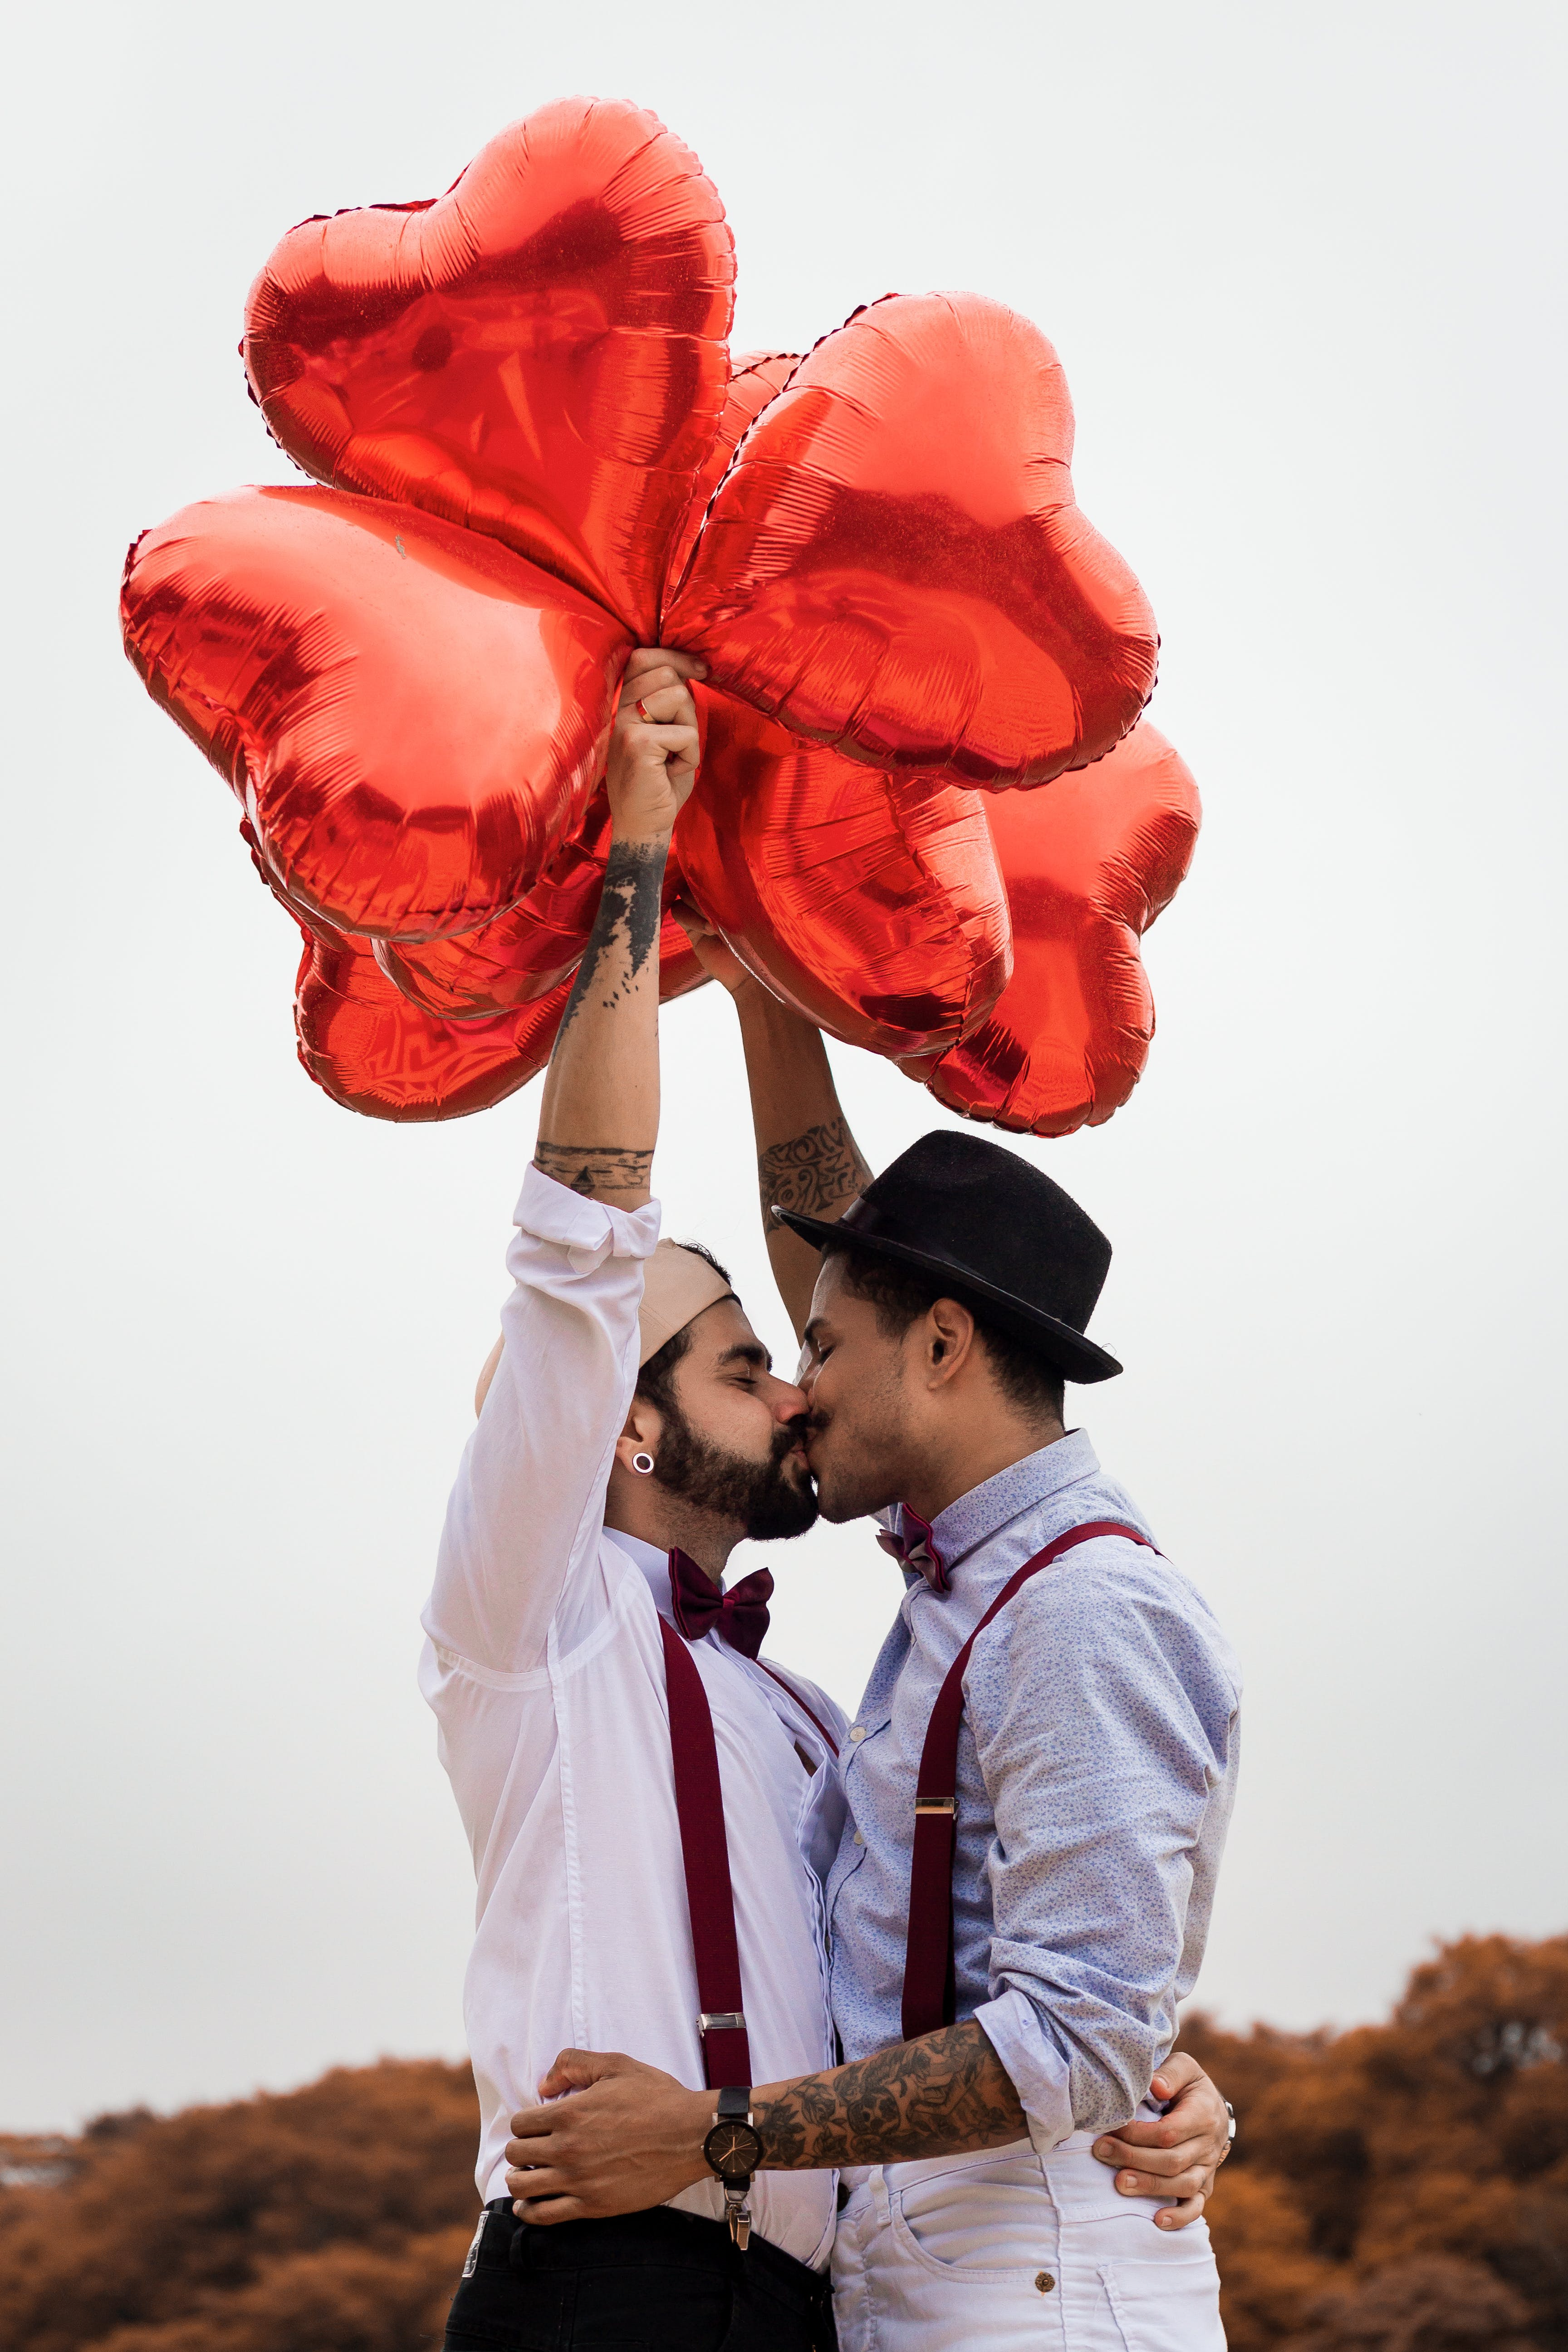 Two Men Kissing And Holding Balloons